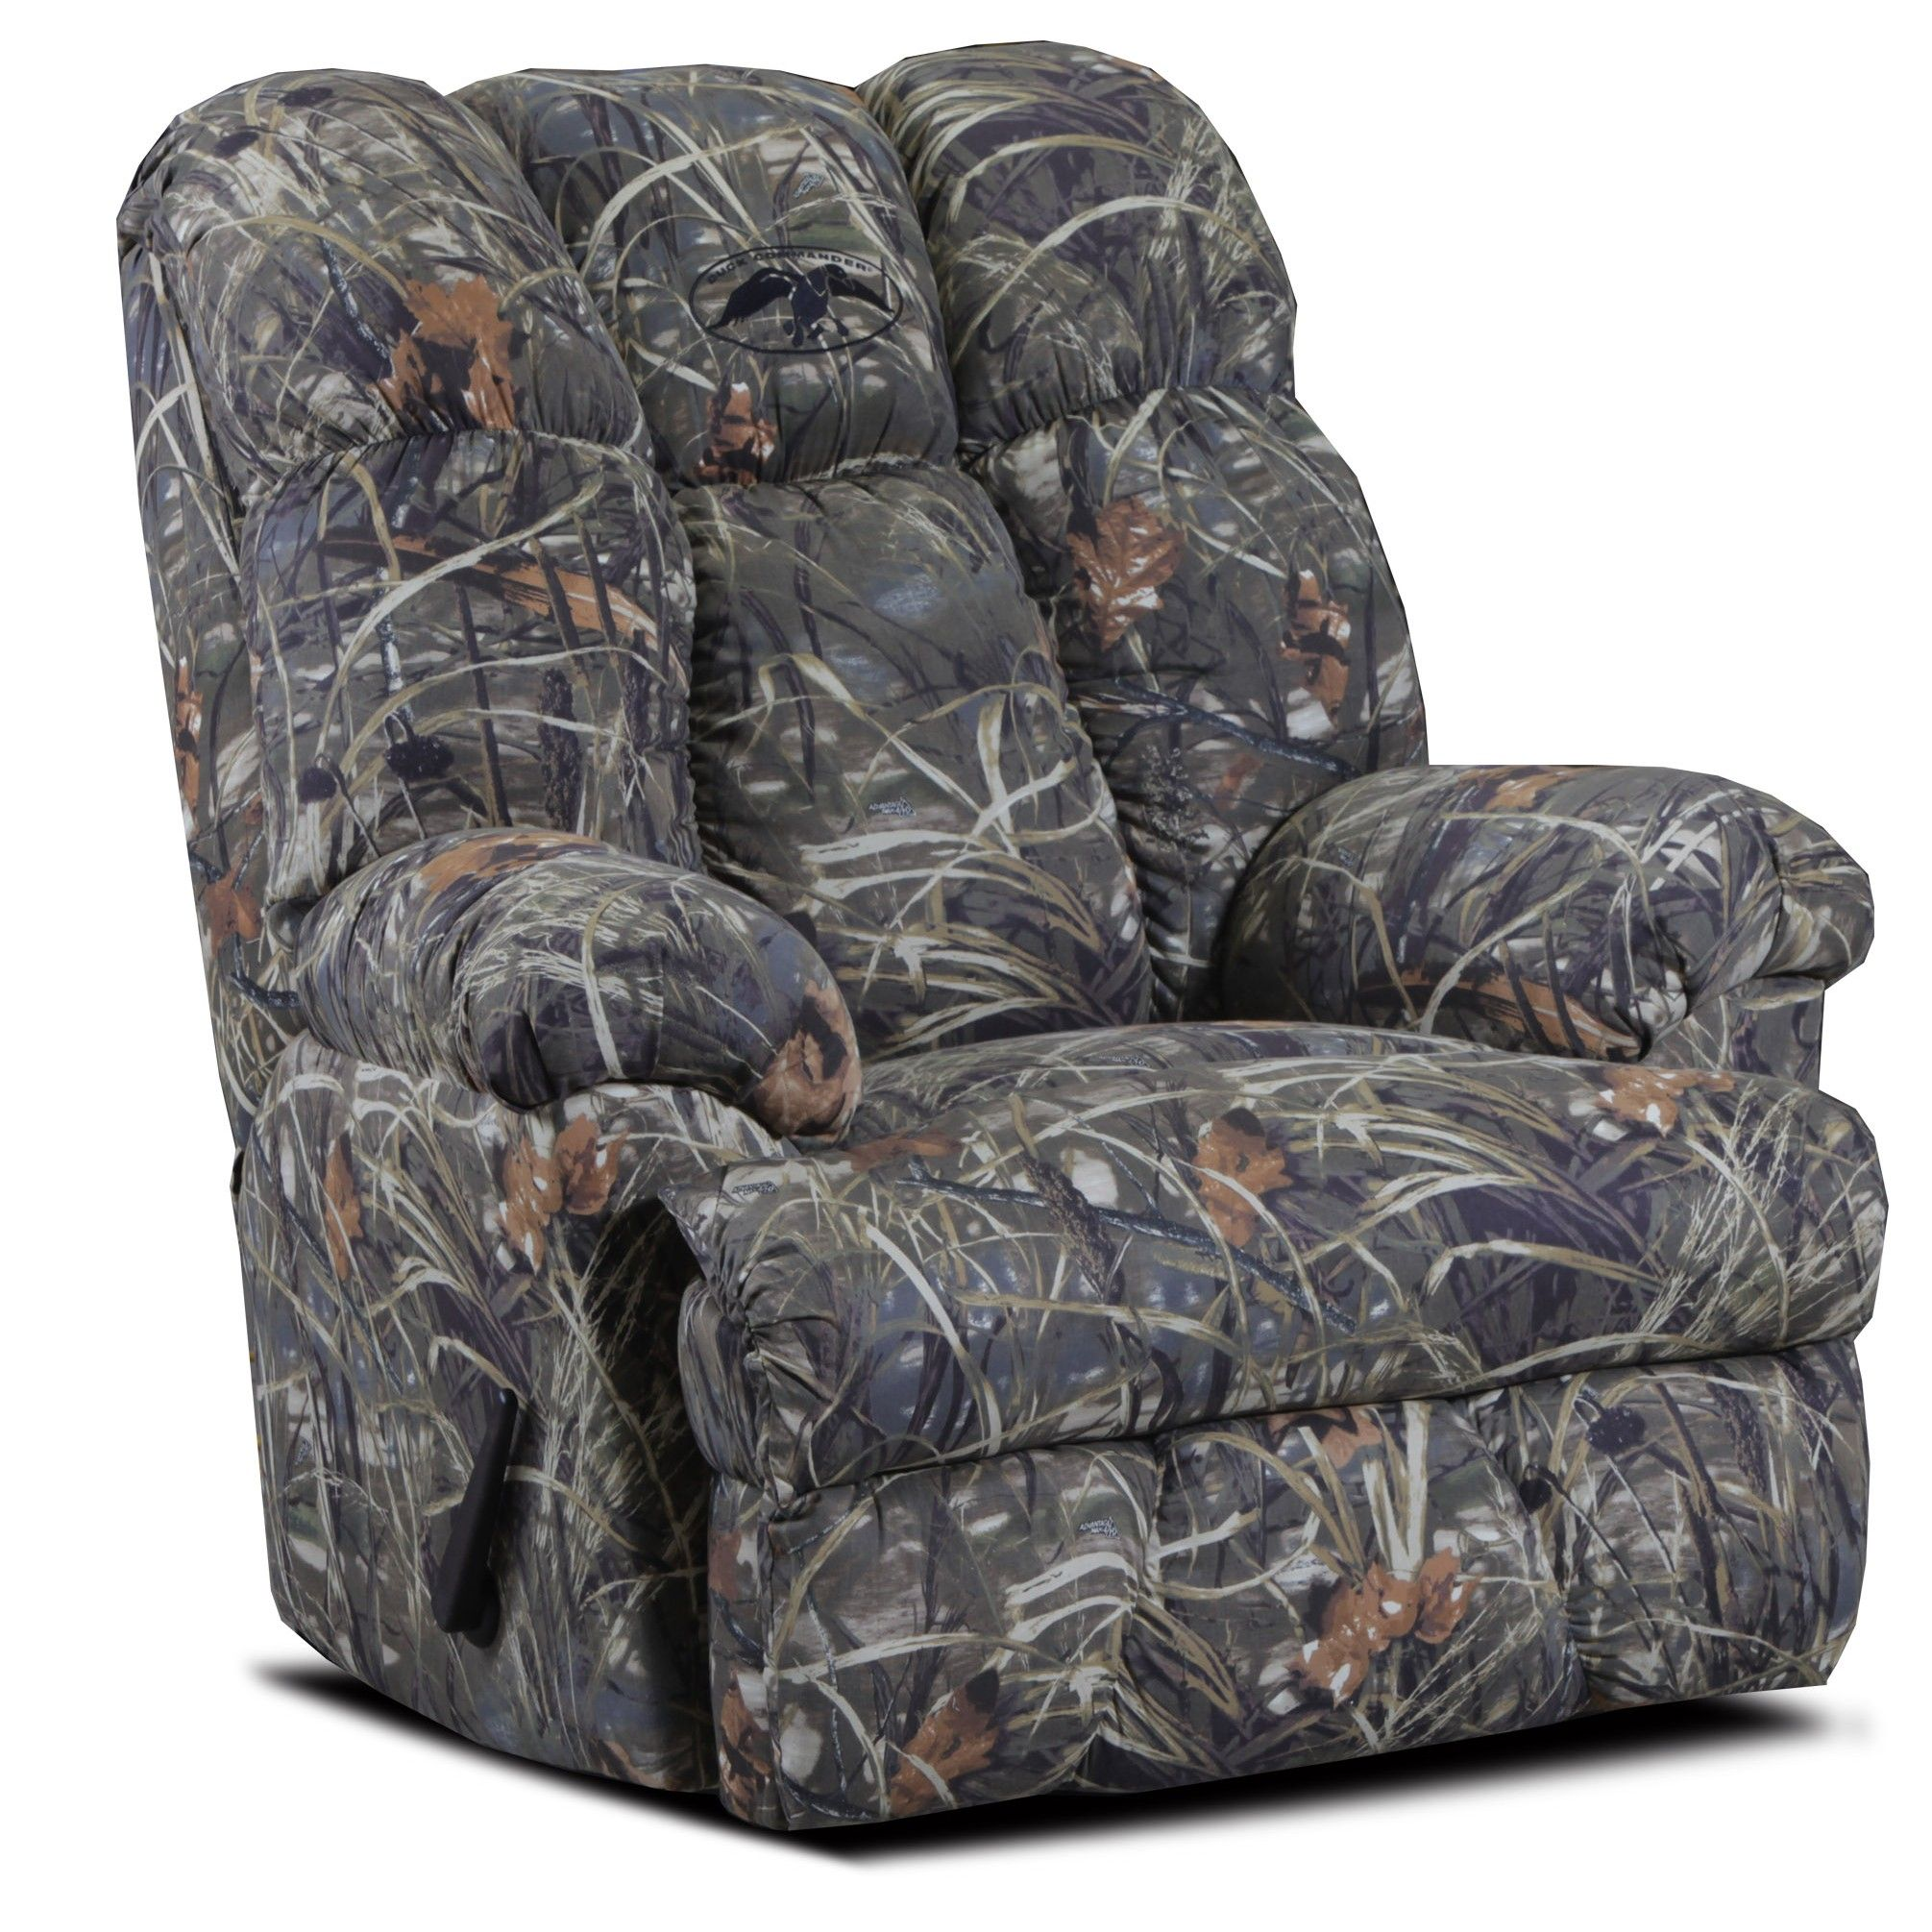 Camo Reclining Sofa Lay Flat Reclining Sofa In Mossy Oak Or Realtree Camouflage Fabric Thesofa